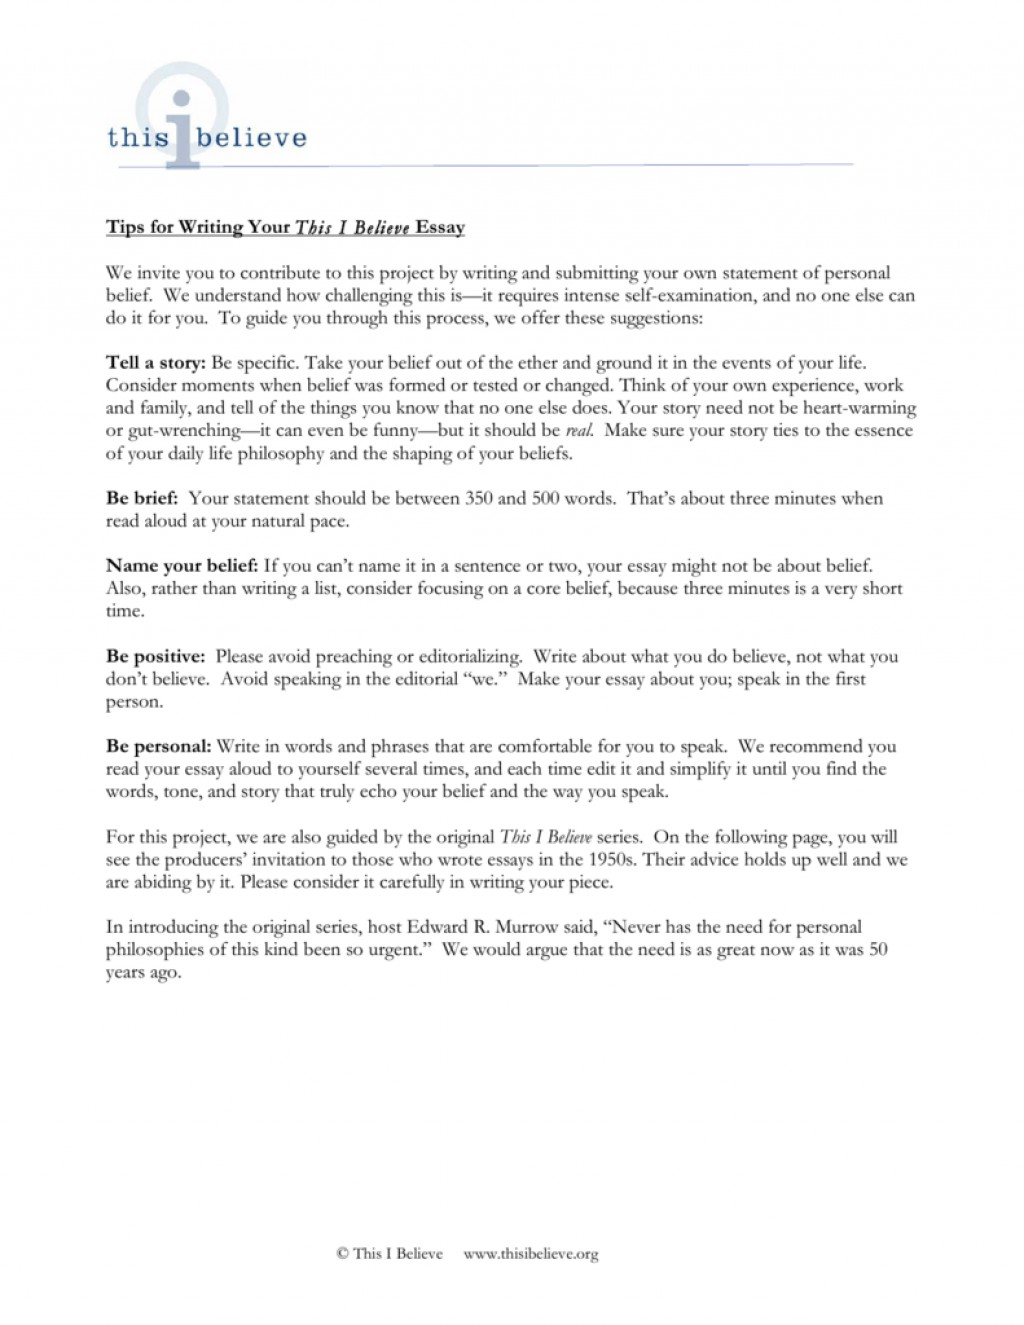 006 We Do Your Essay Example Tips For Writing This I Believe Invite You To Contribute Write 008807221 1 Outstanding Reviews Large